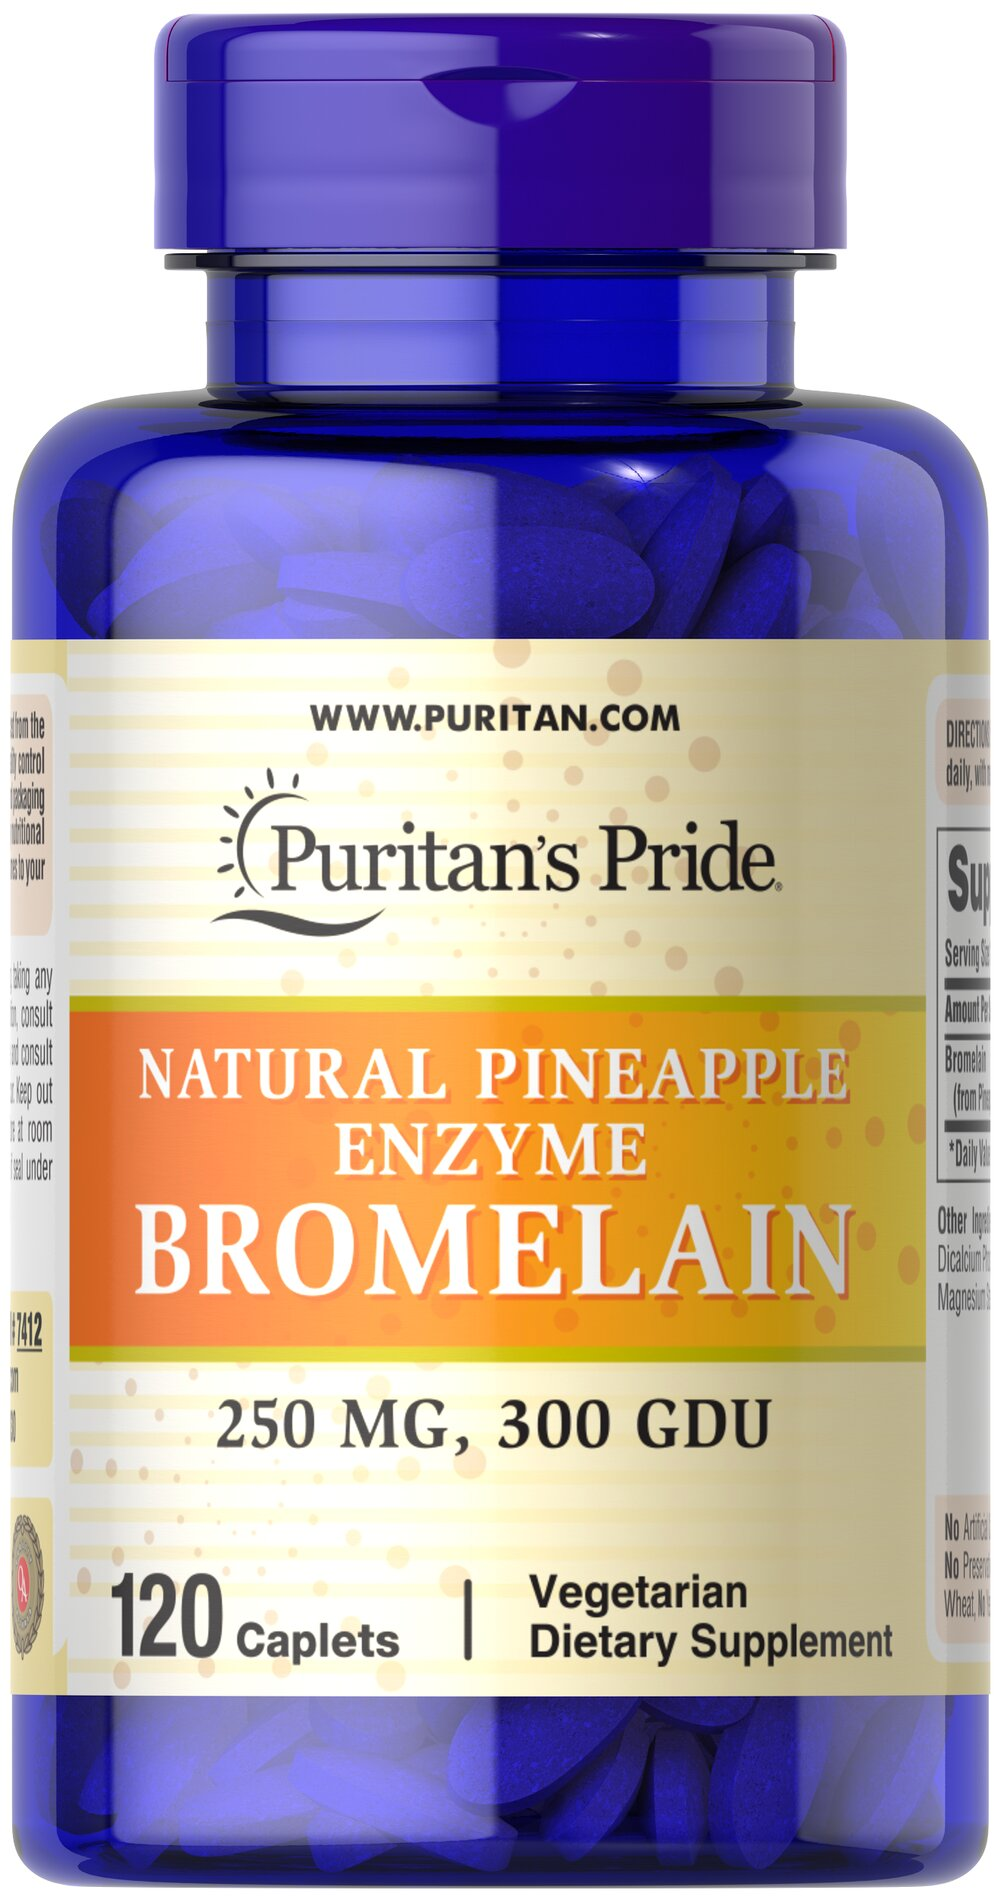 Bromelain 250 mg 300 GDU/gram Thumbnail Alternate Bottle View